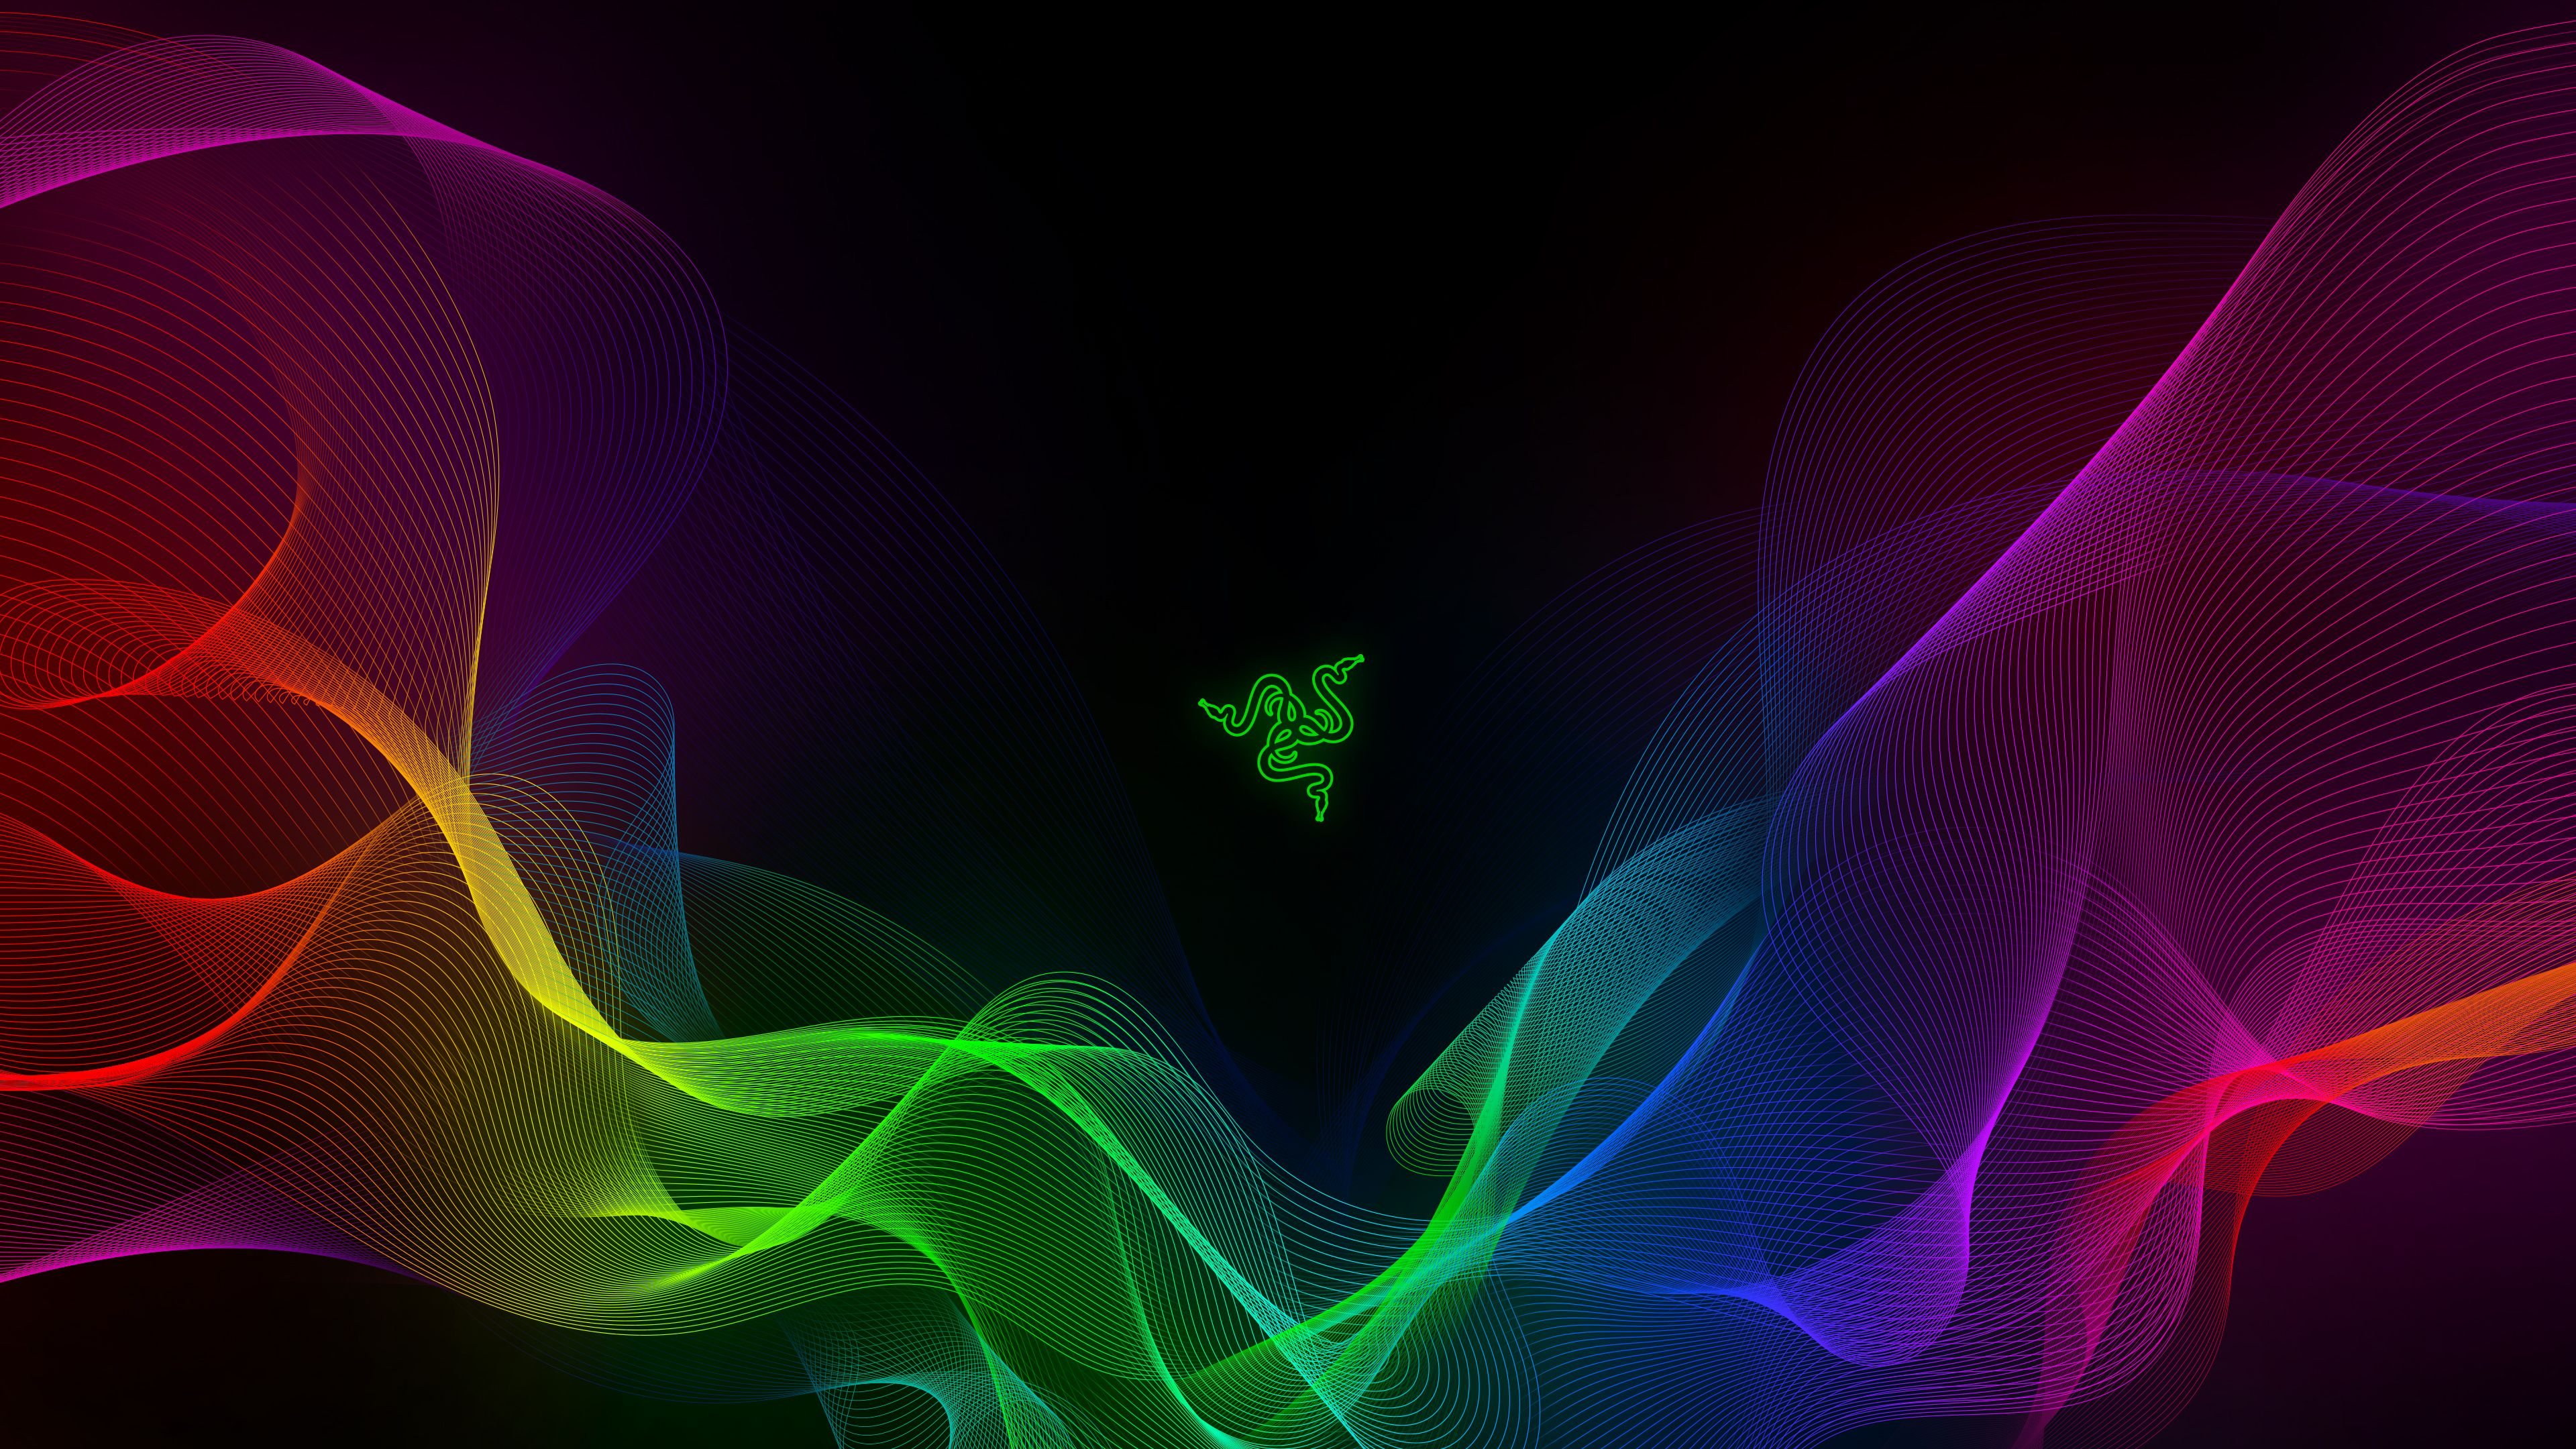 Razer 4k 4k Wallpapers For Pc Live Wallpaper For Pc Wallpaper Pc